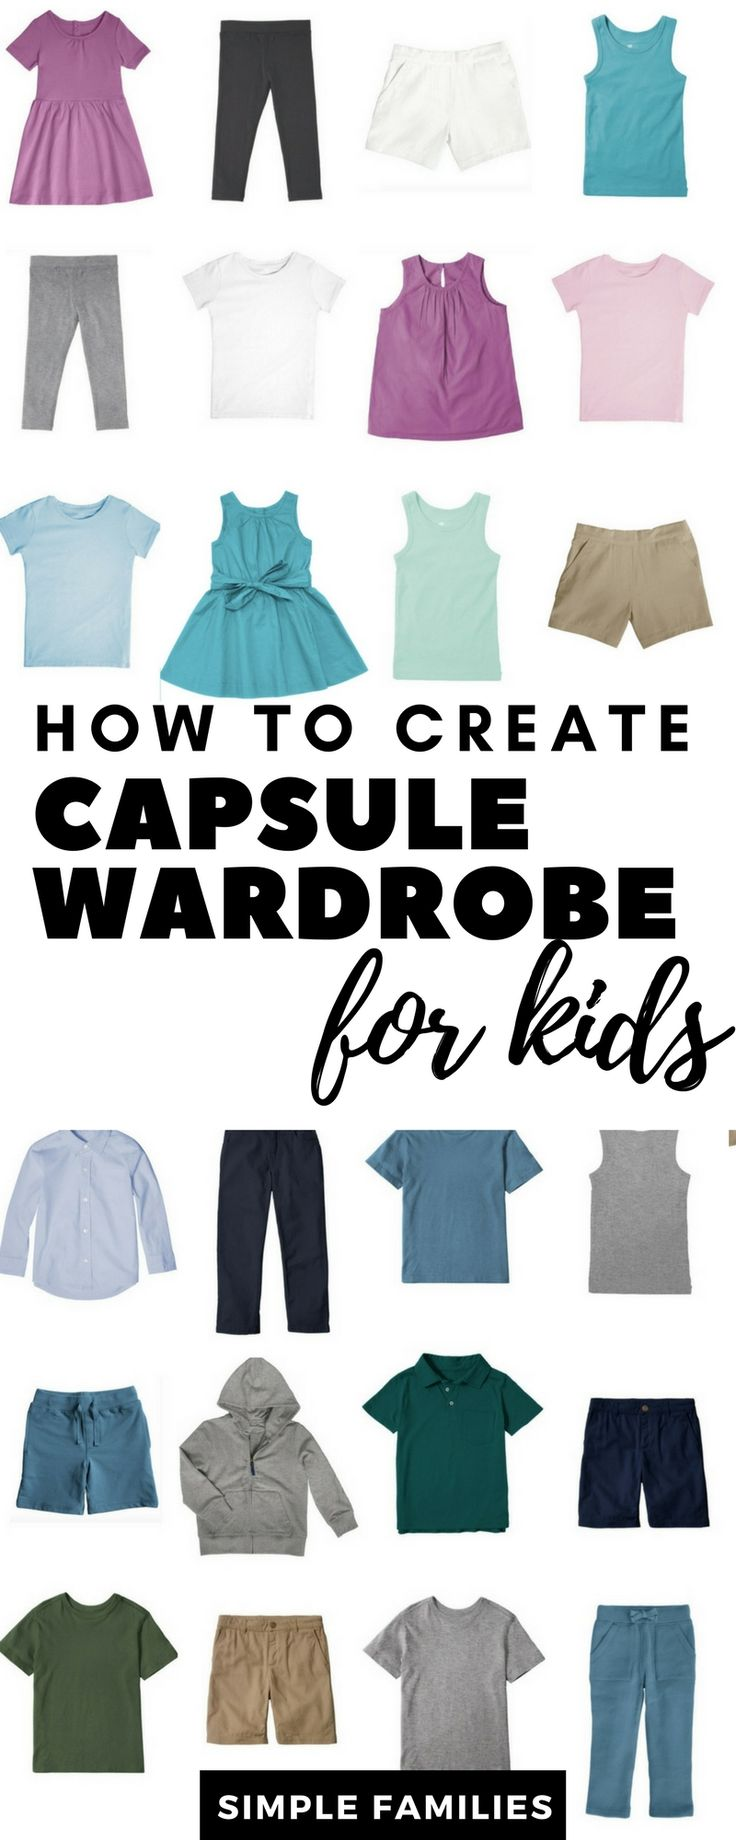 How to Create a Basic Capsule Wardrobe for Kids